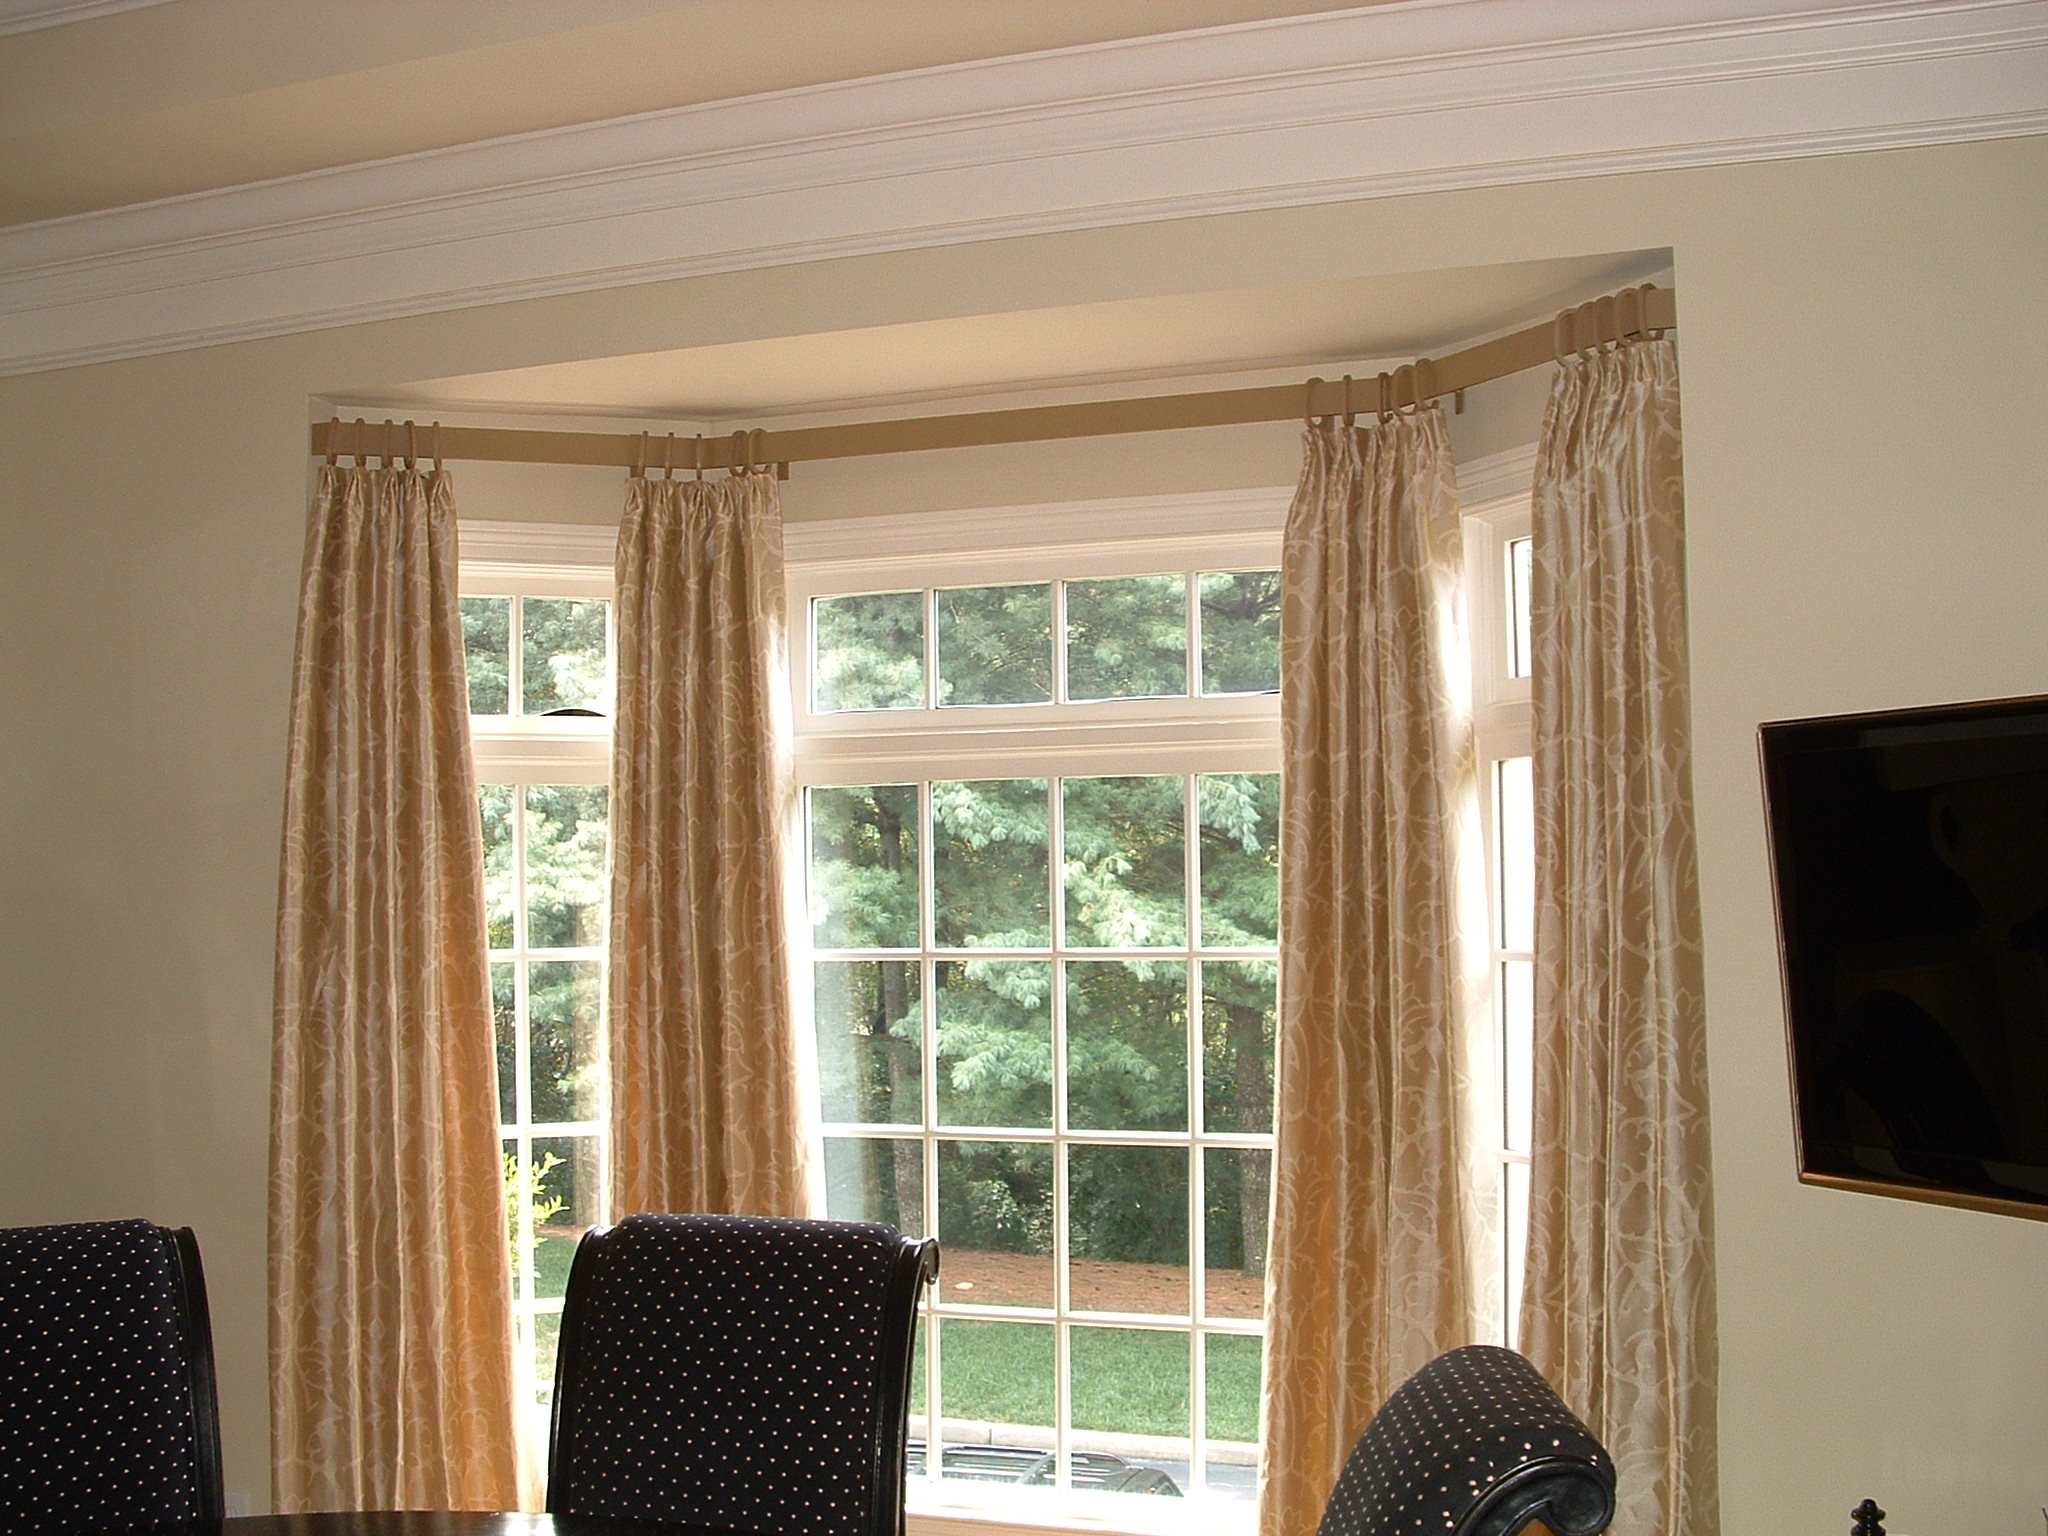 Bay Window Curtain Rod Lowes Lowes Bendable Curtain Rod Randolph Indoor And Outdoor Design